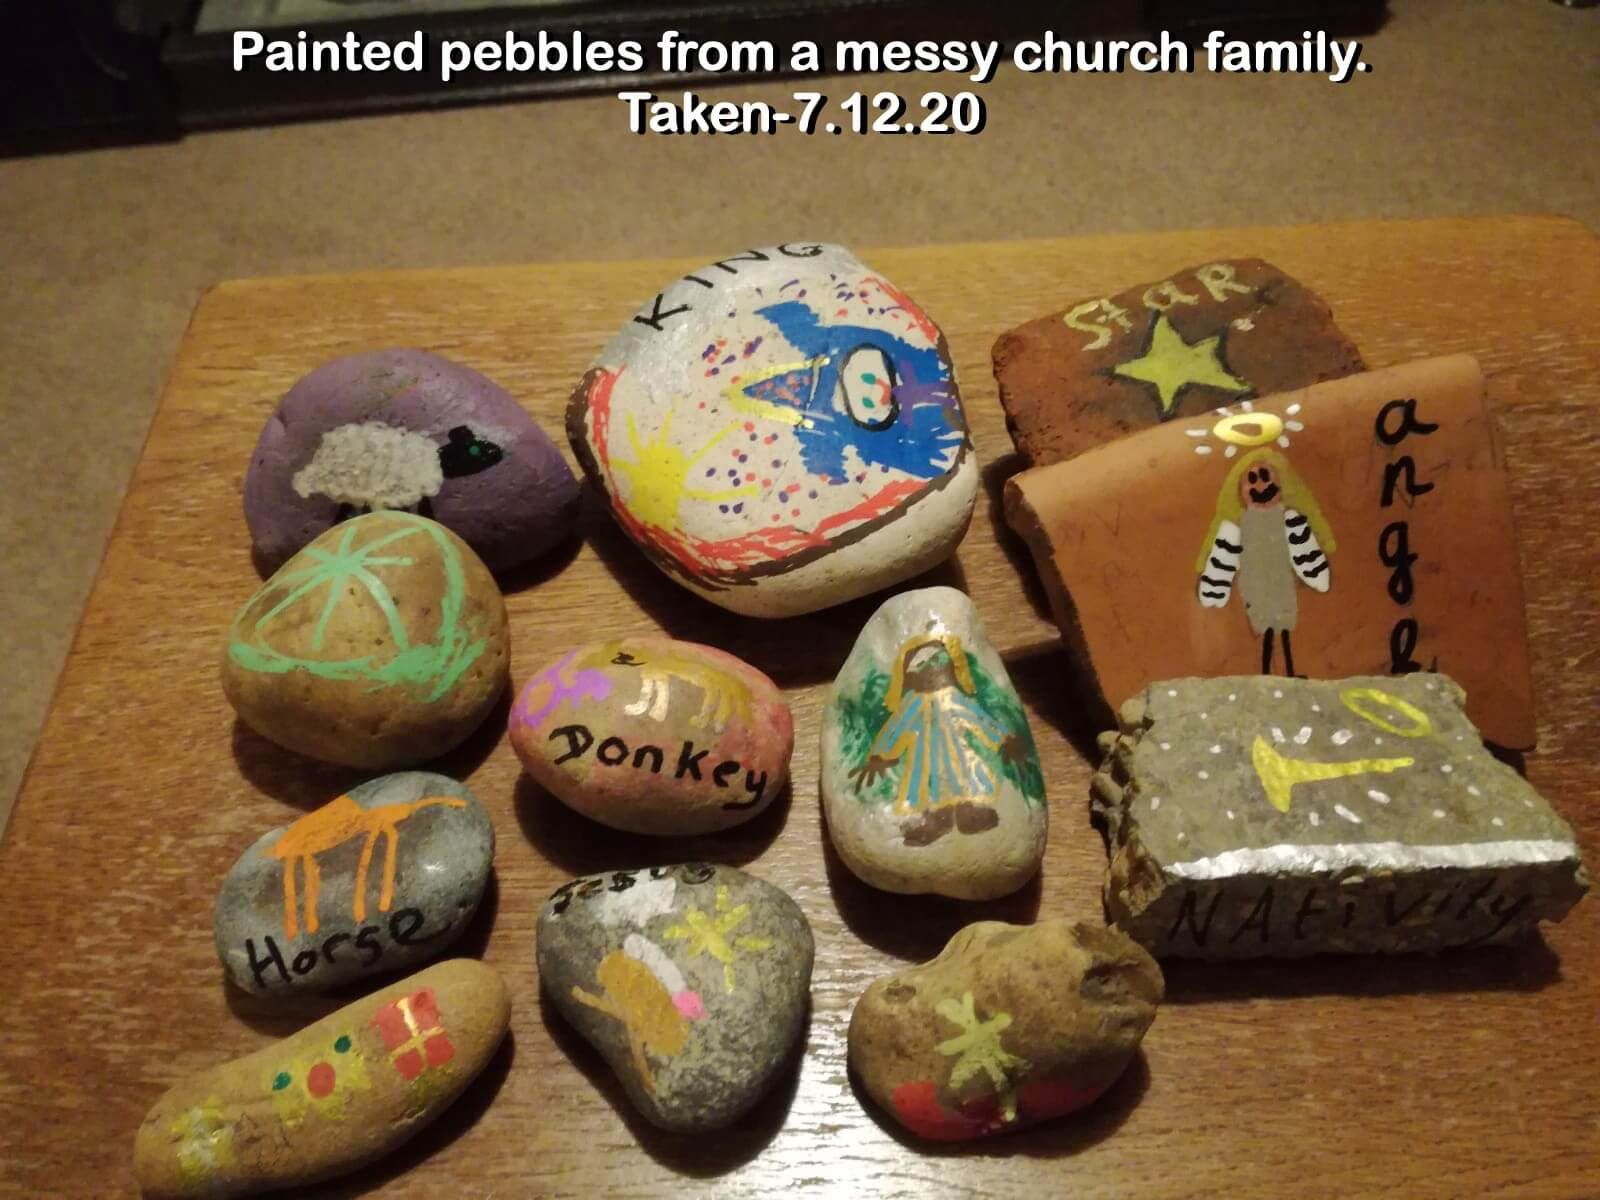 Painted pebbles from a messy church family.